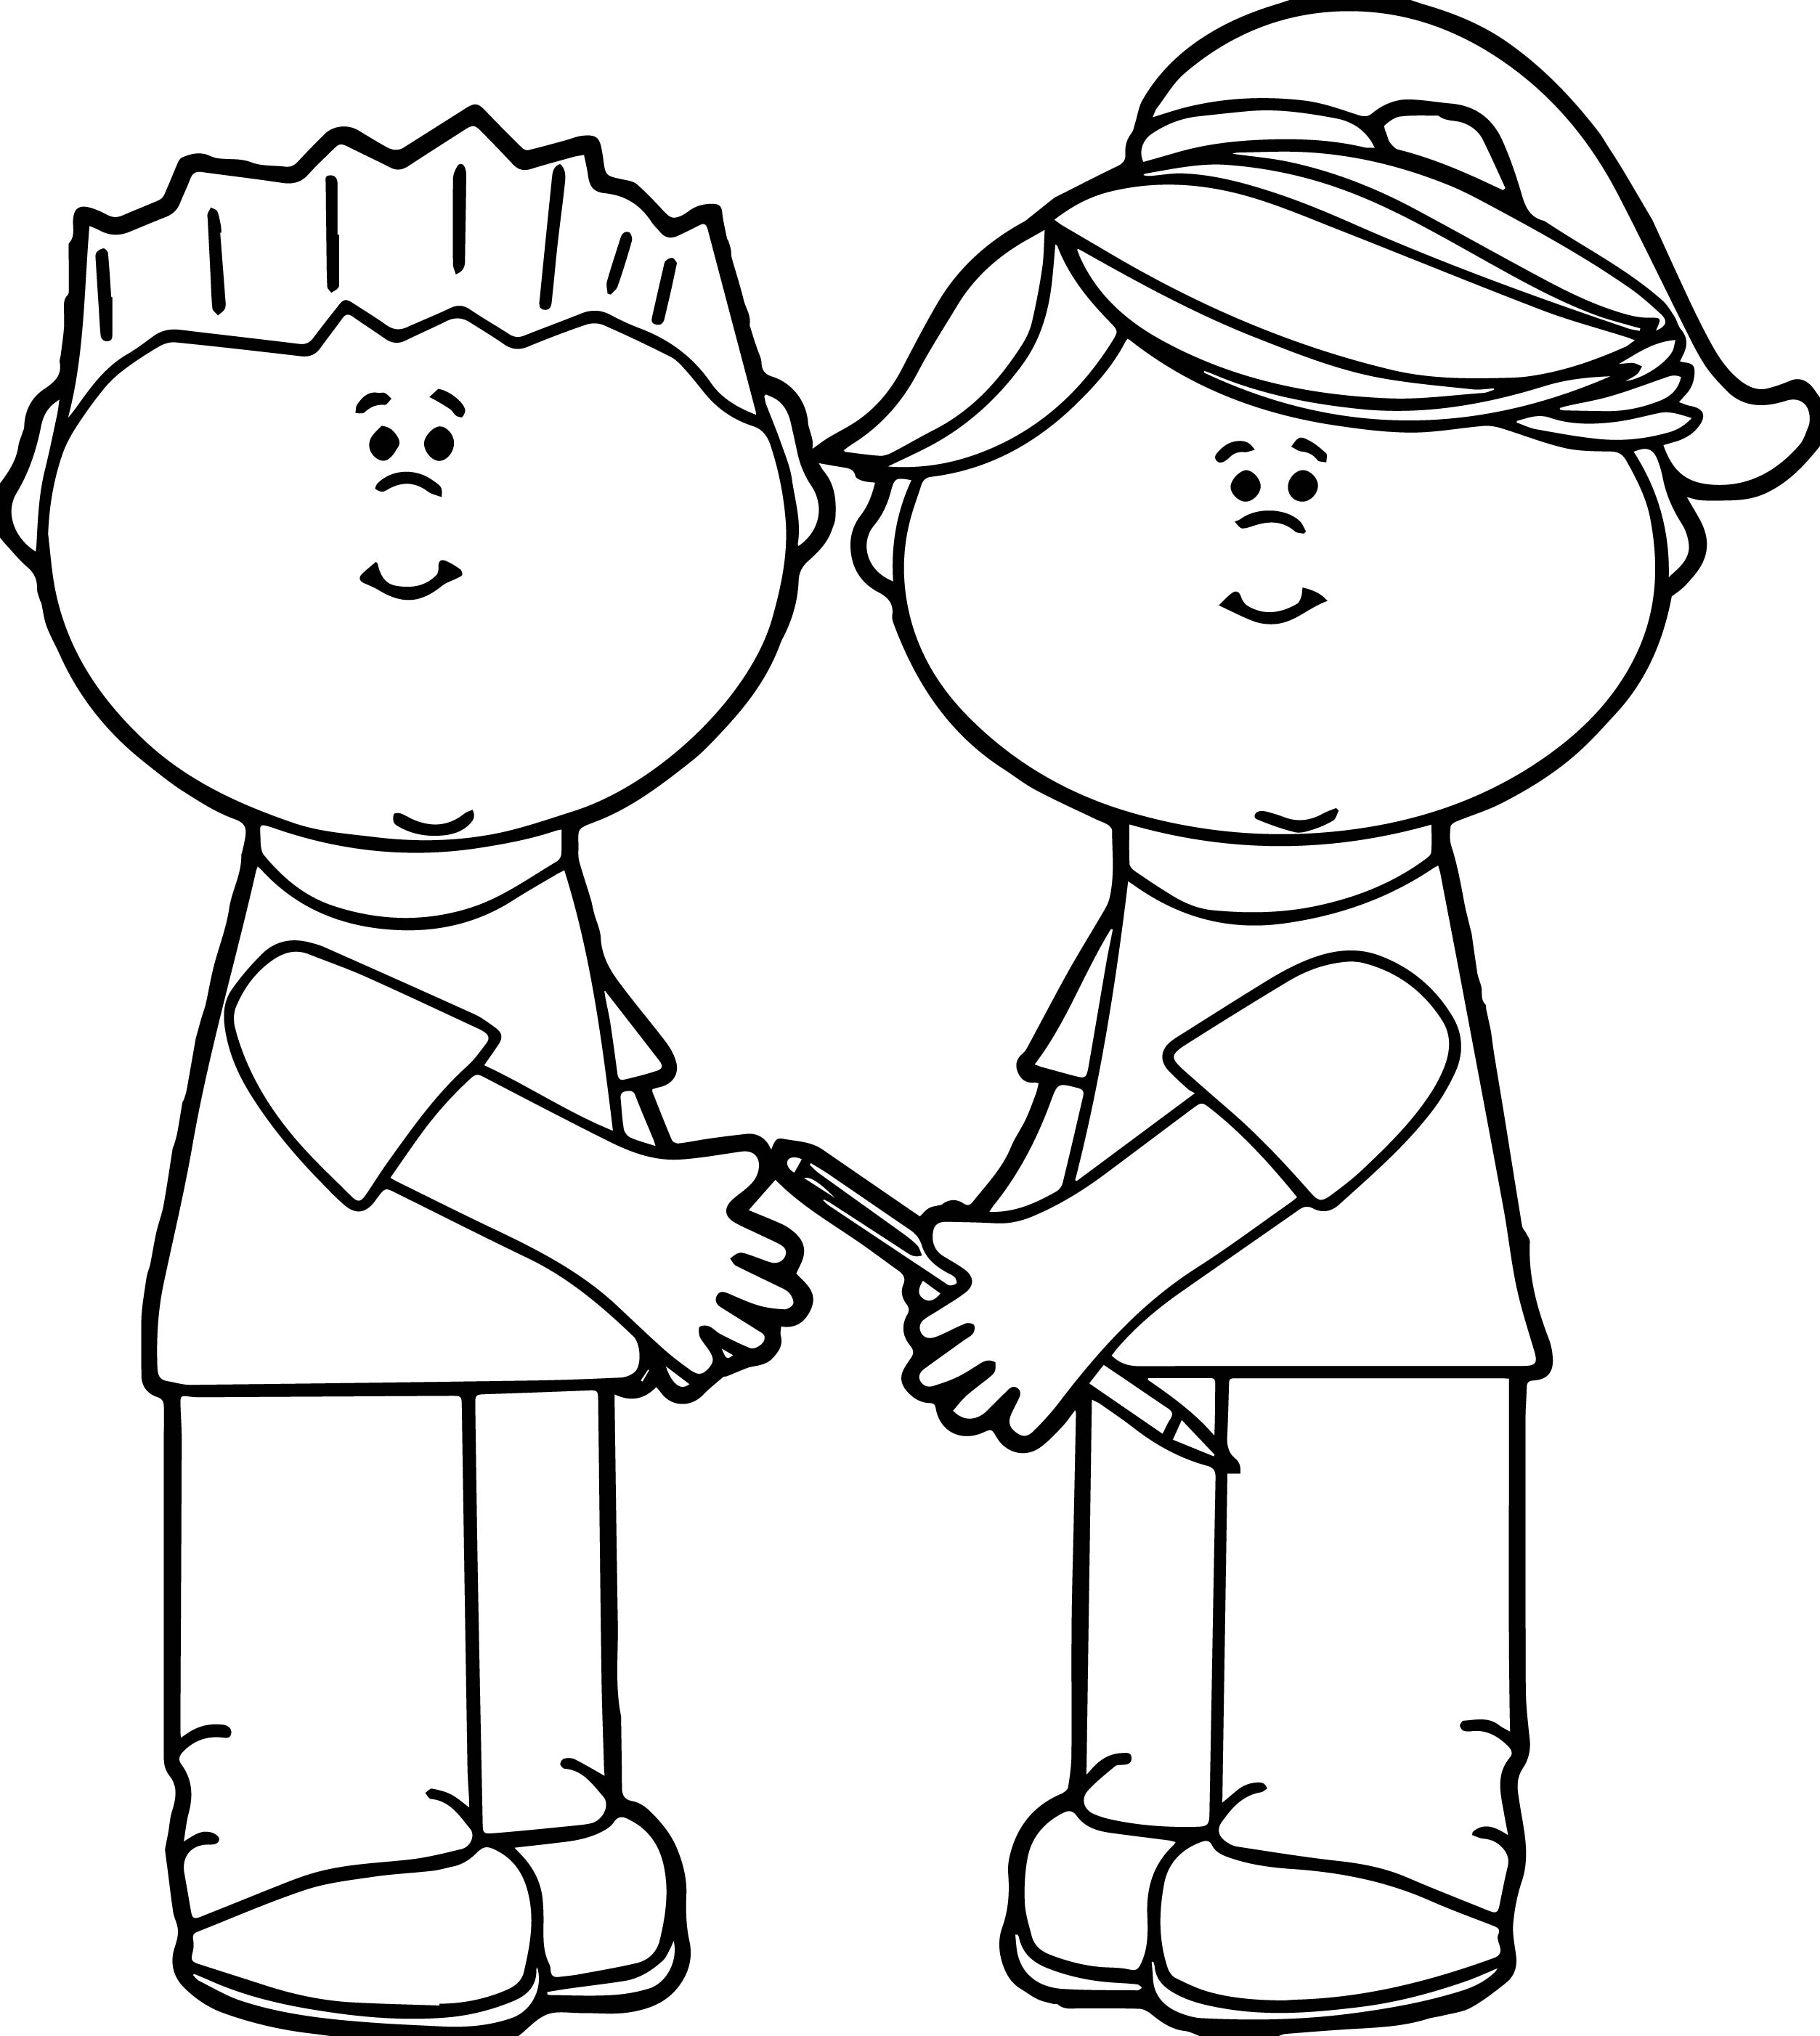 coloring in pages for children - photo #18